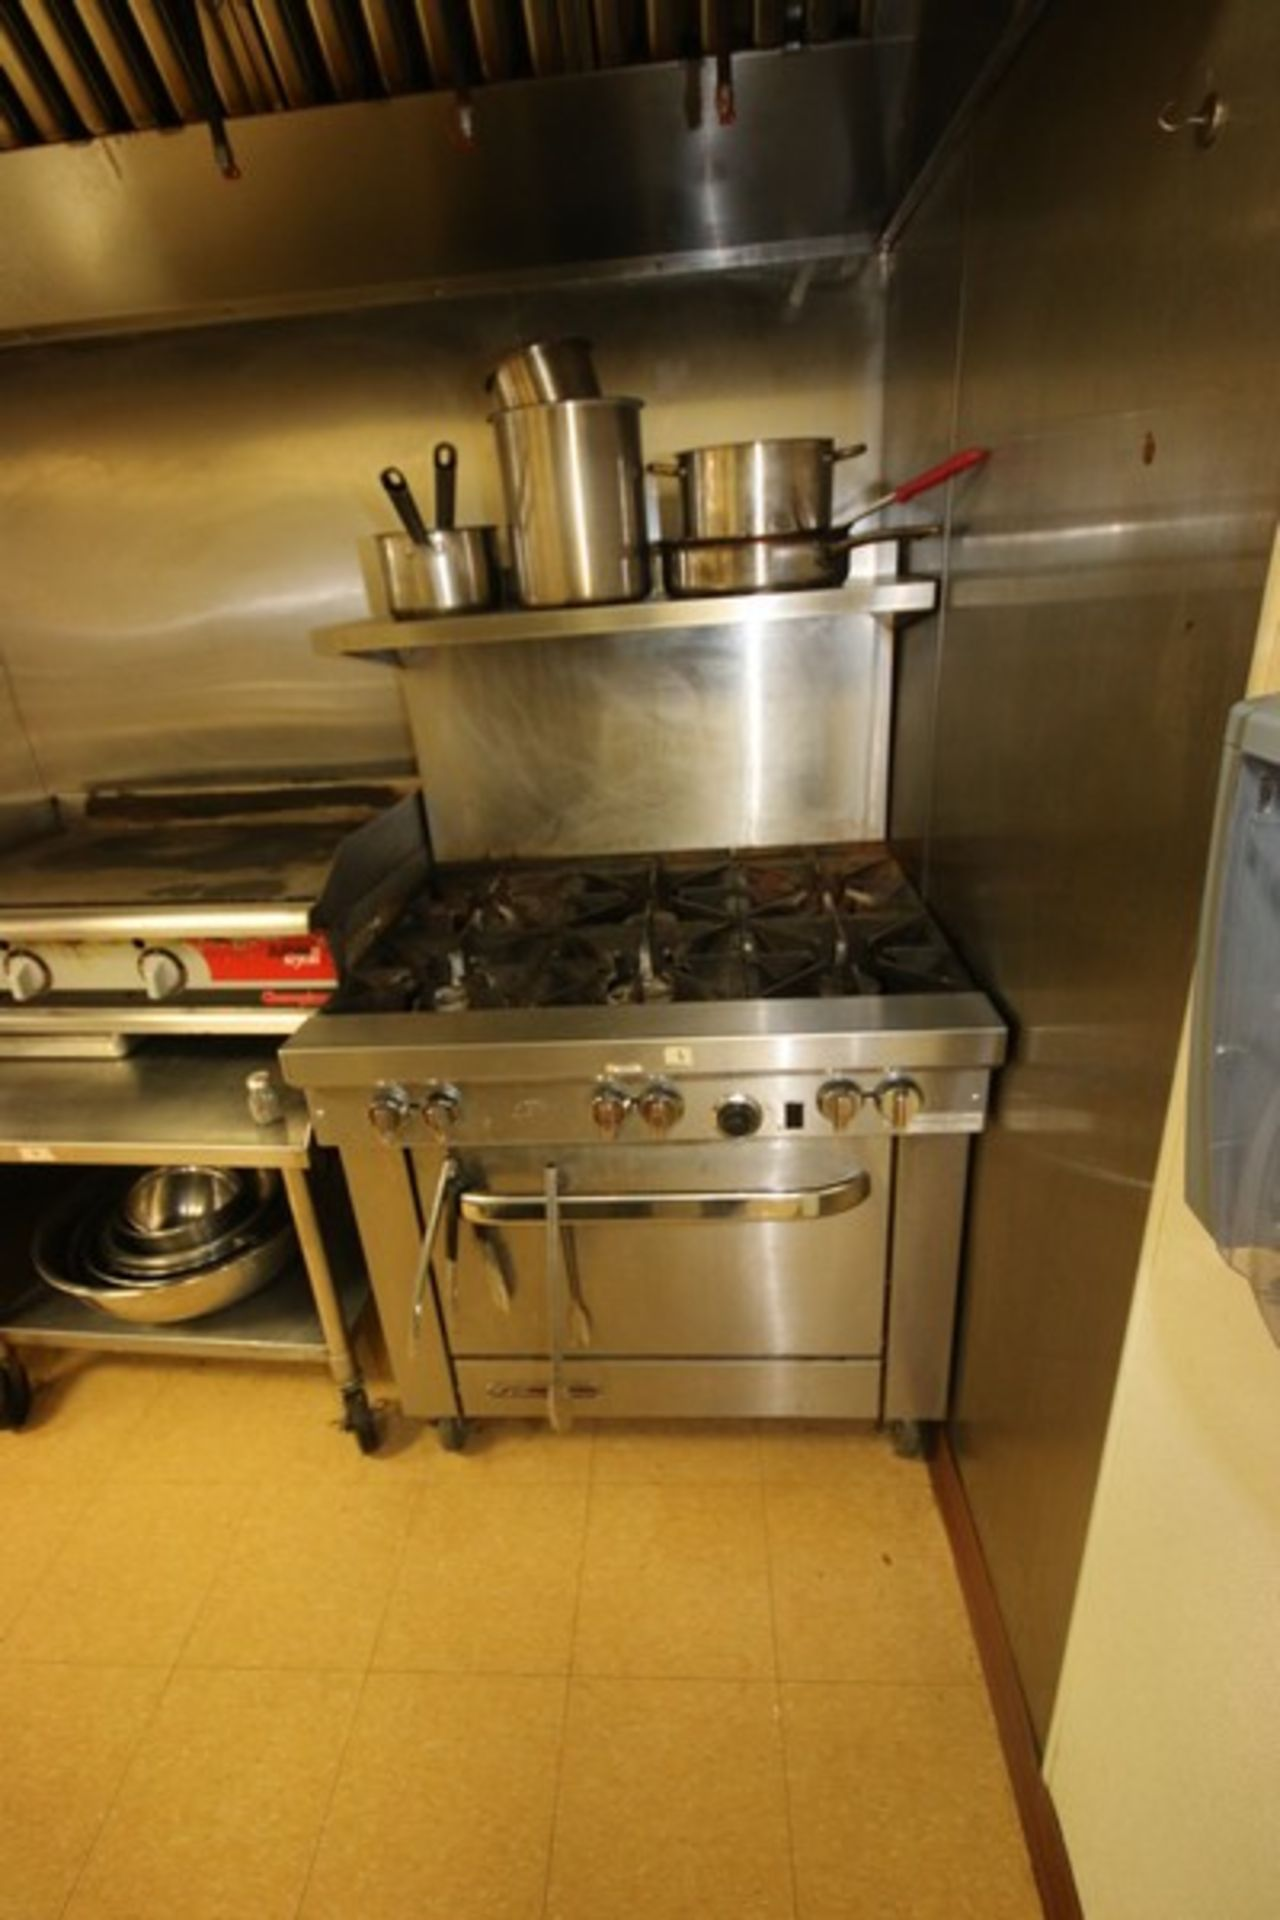 Southbend S/S 6-Burner Stove Top & Oven, S/N 10K13111, with S/S Top Shelf, Mounted on Portable Frame - Image 2 of 5